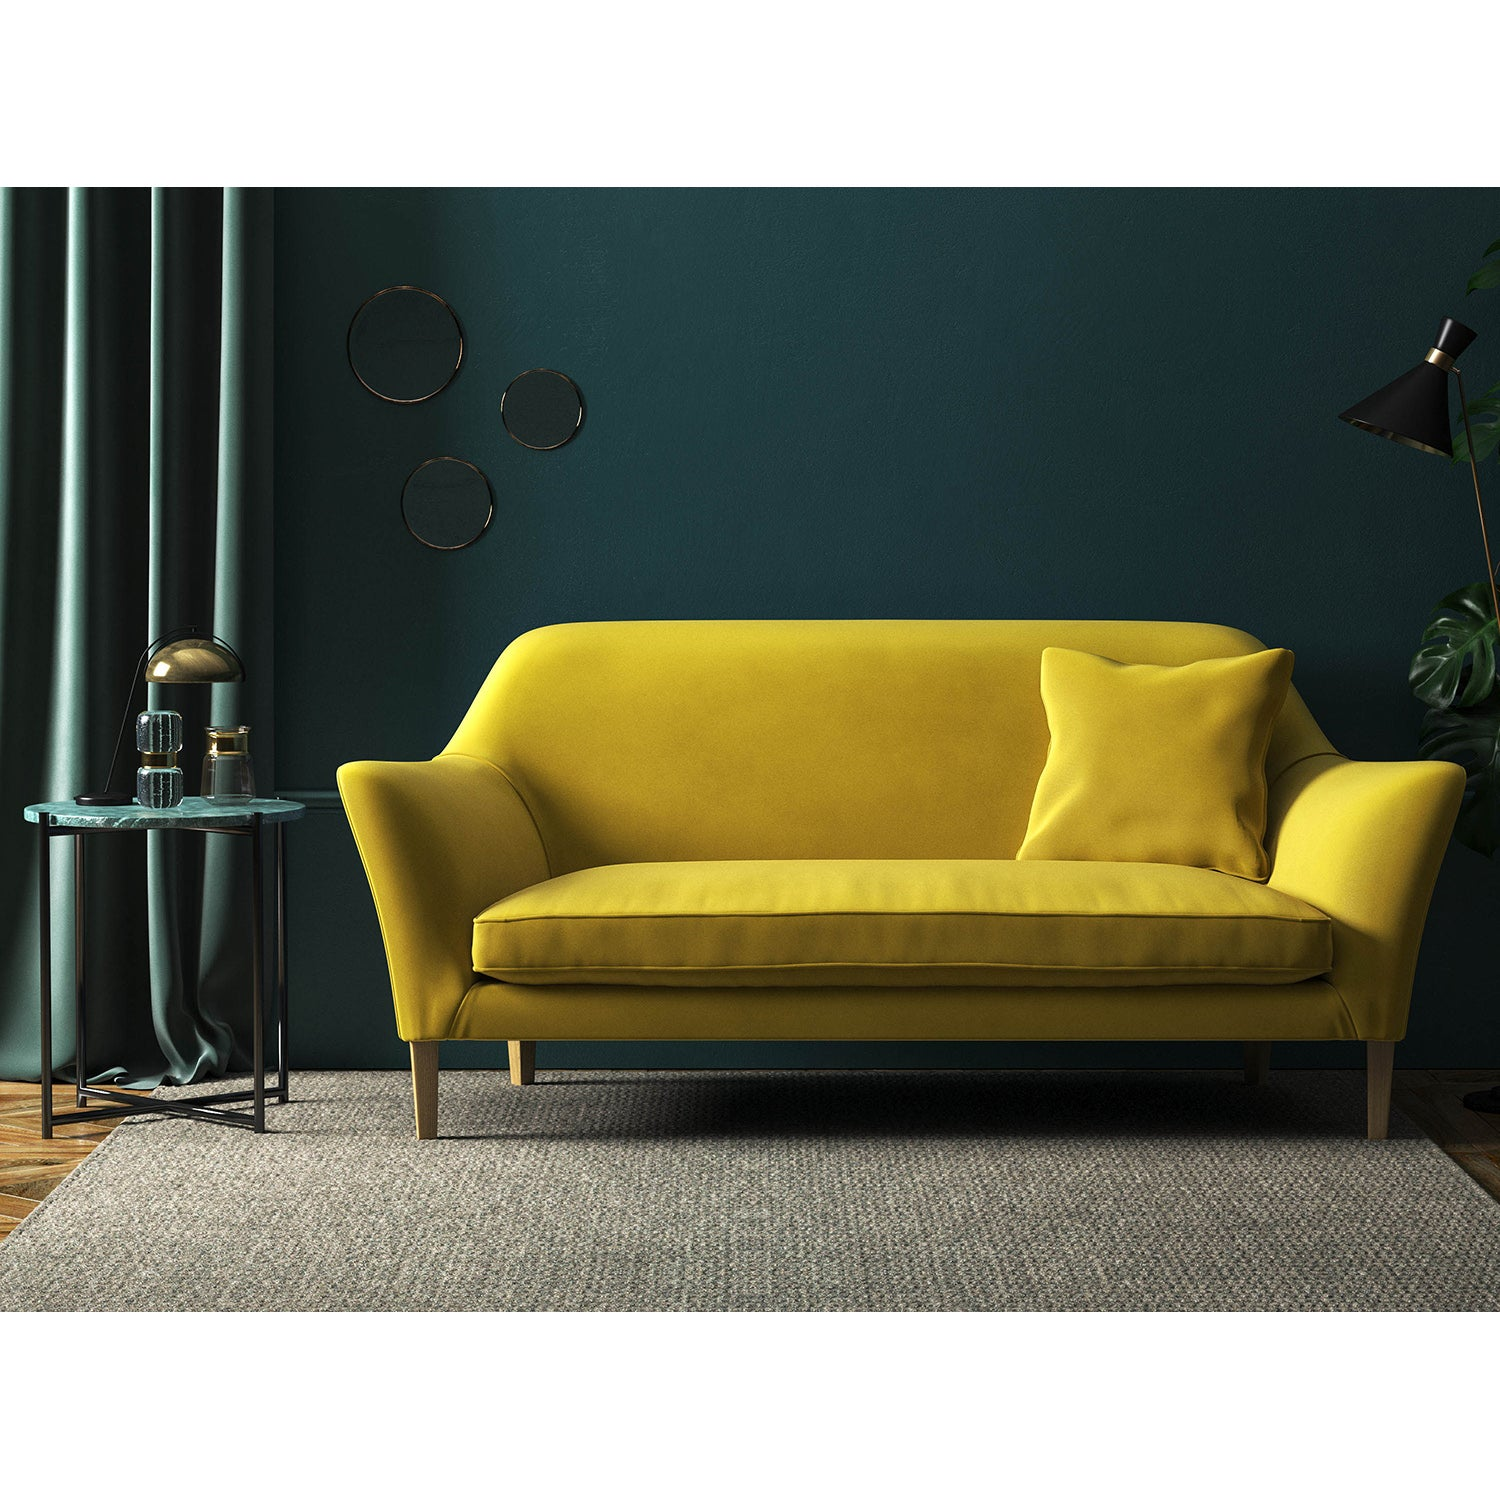 Sofa upholstered in a yellow velvet fabric for domestic and contract use